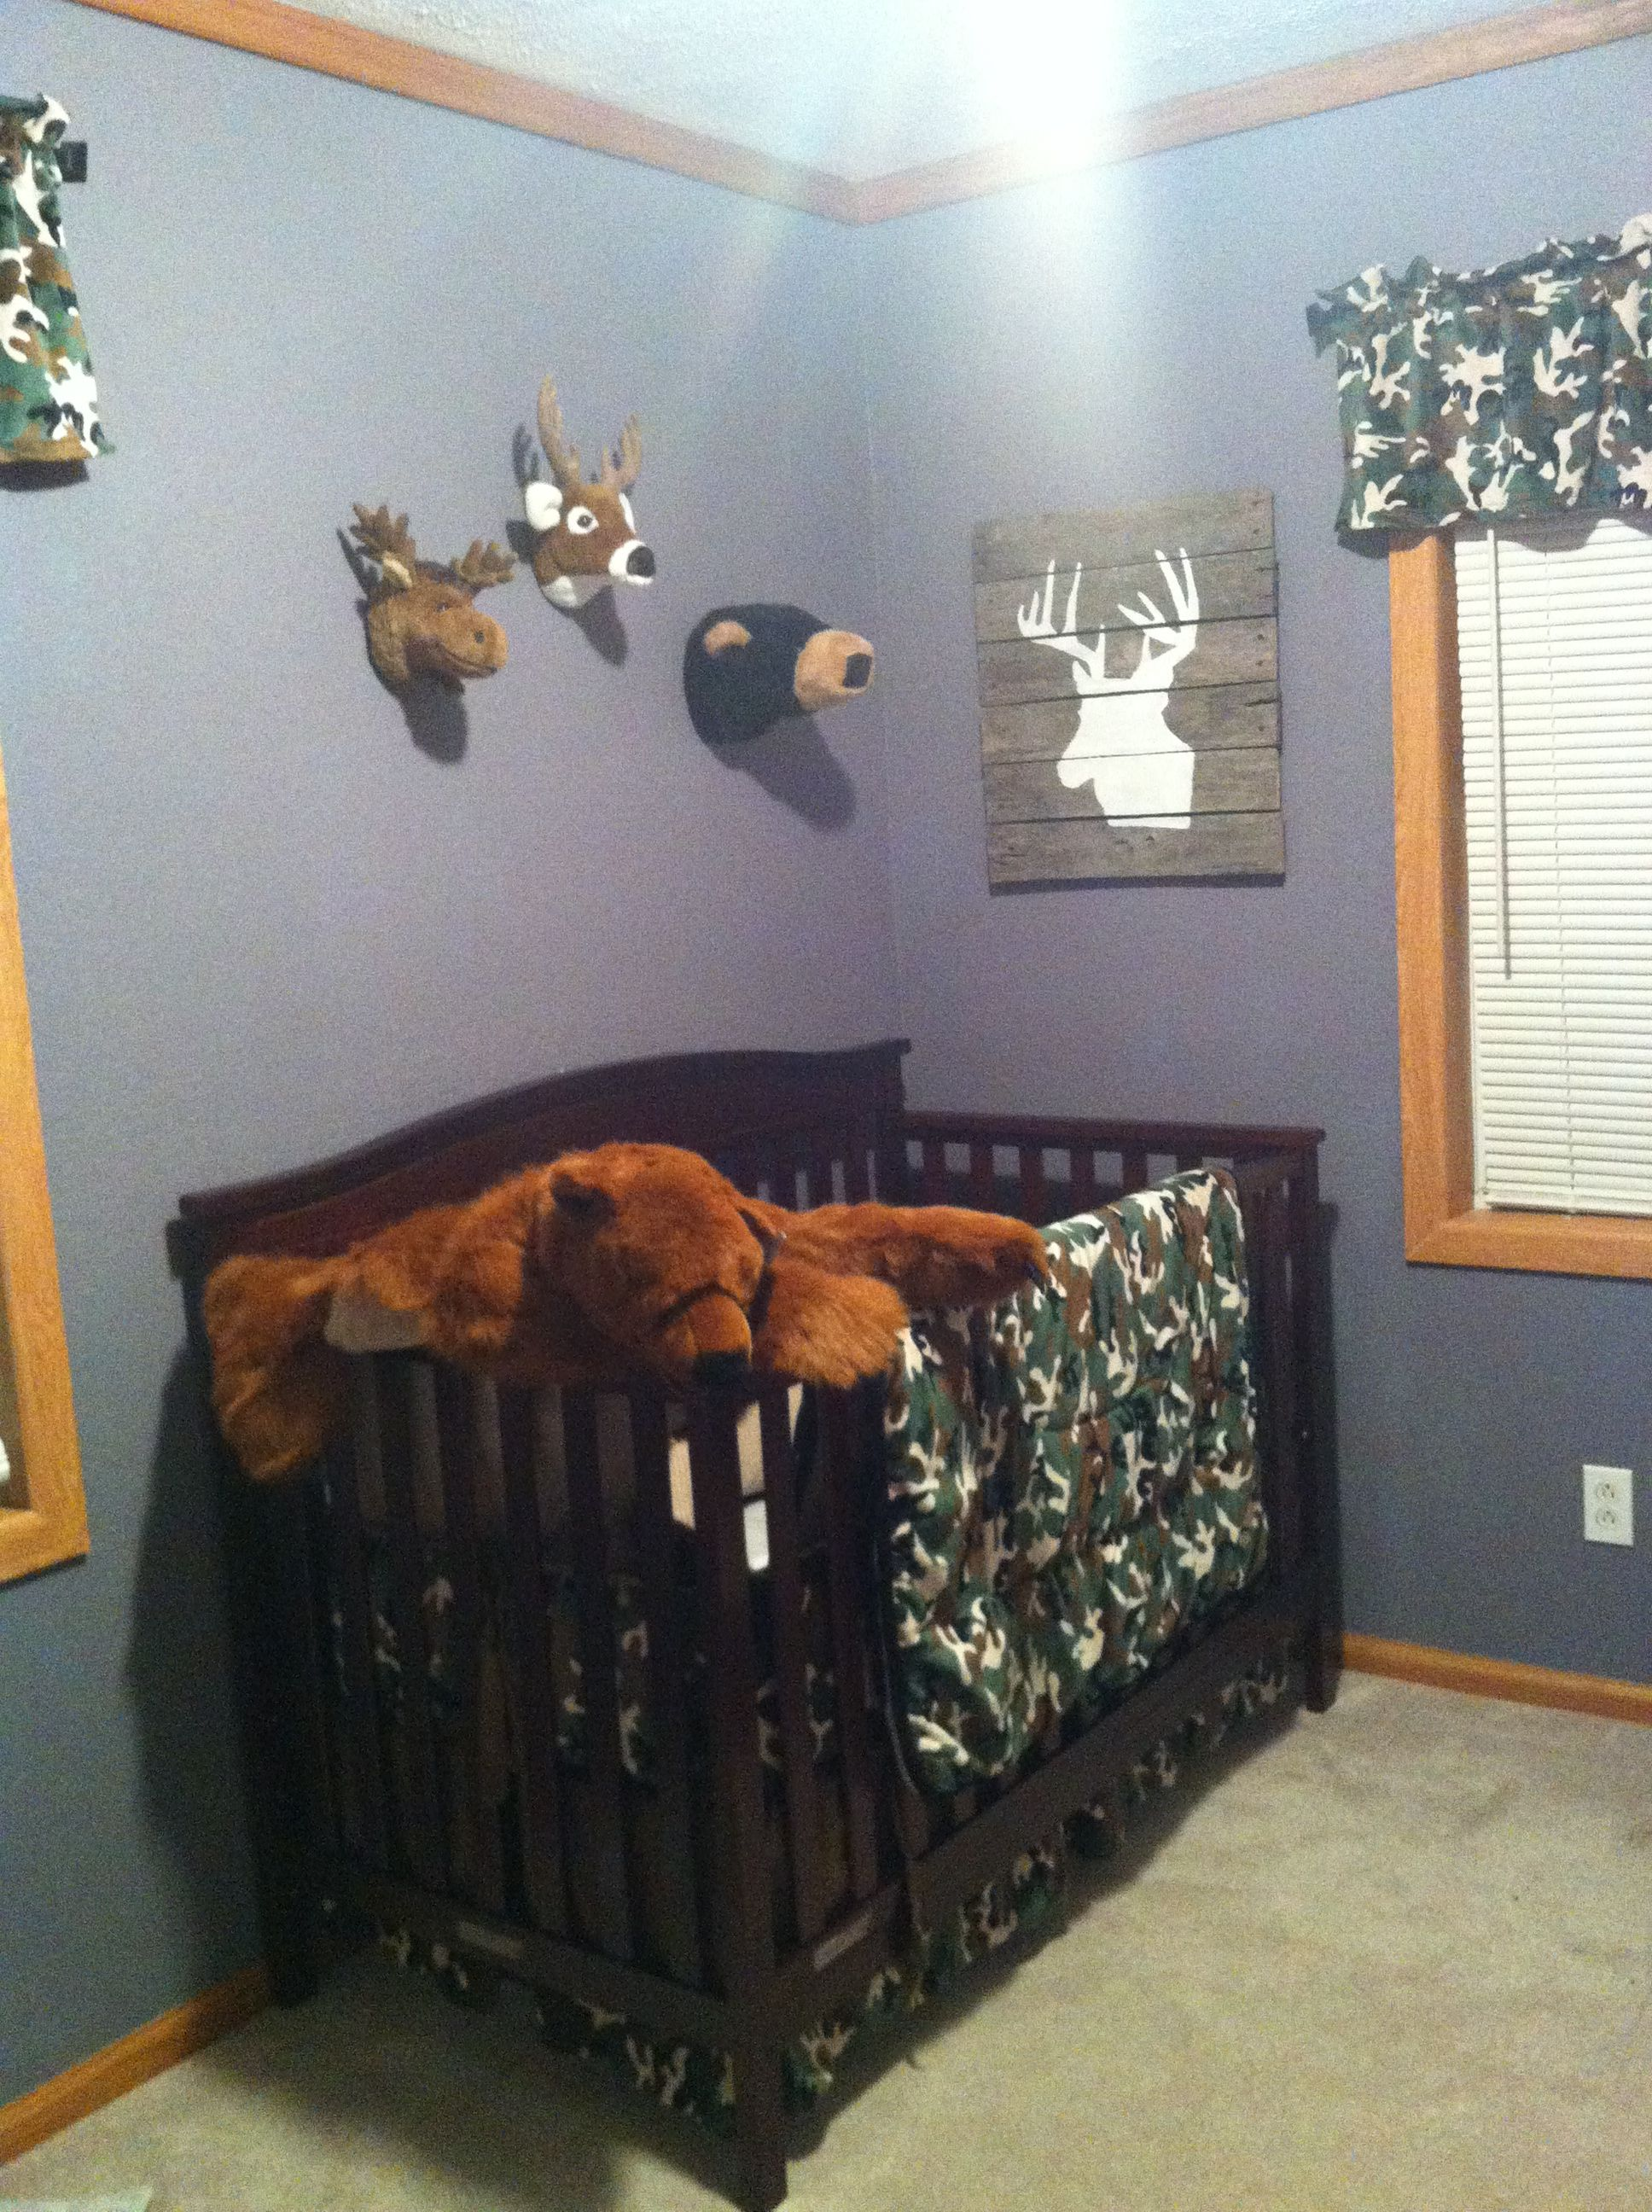 Oh How This Makes Me Want Another Boy Perfect For Bryan S Offspring Lol Baby Boy Rooms Camo Baby Room Camo Baby Stuff Baby camo bedroom decor